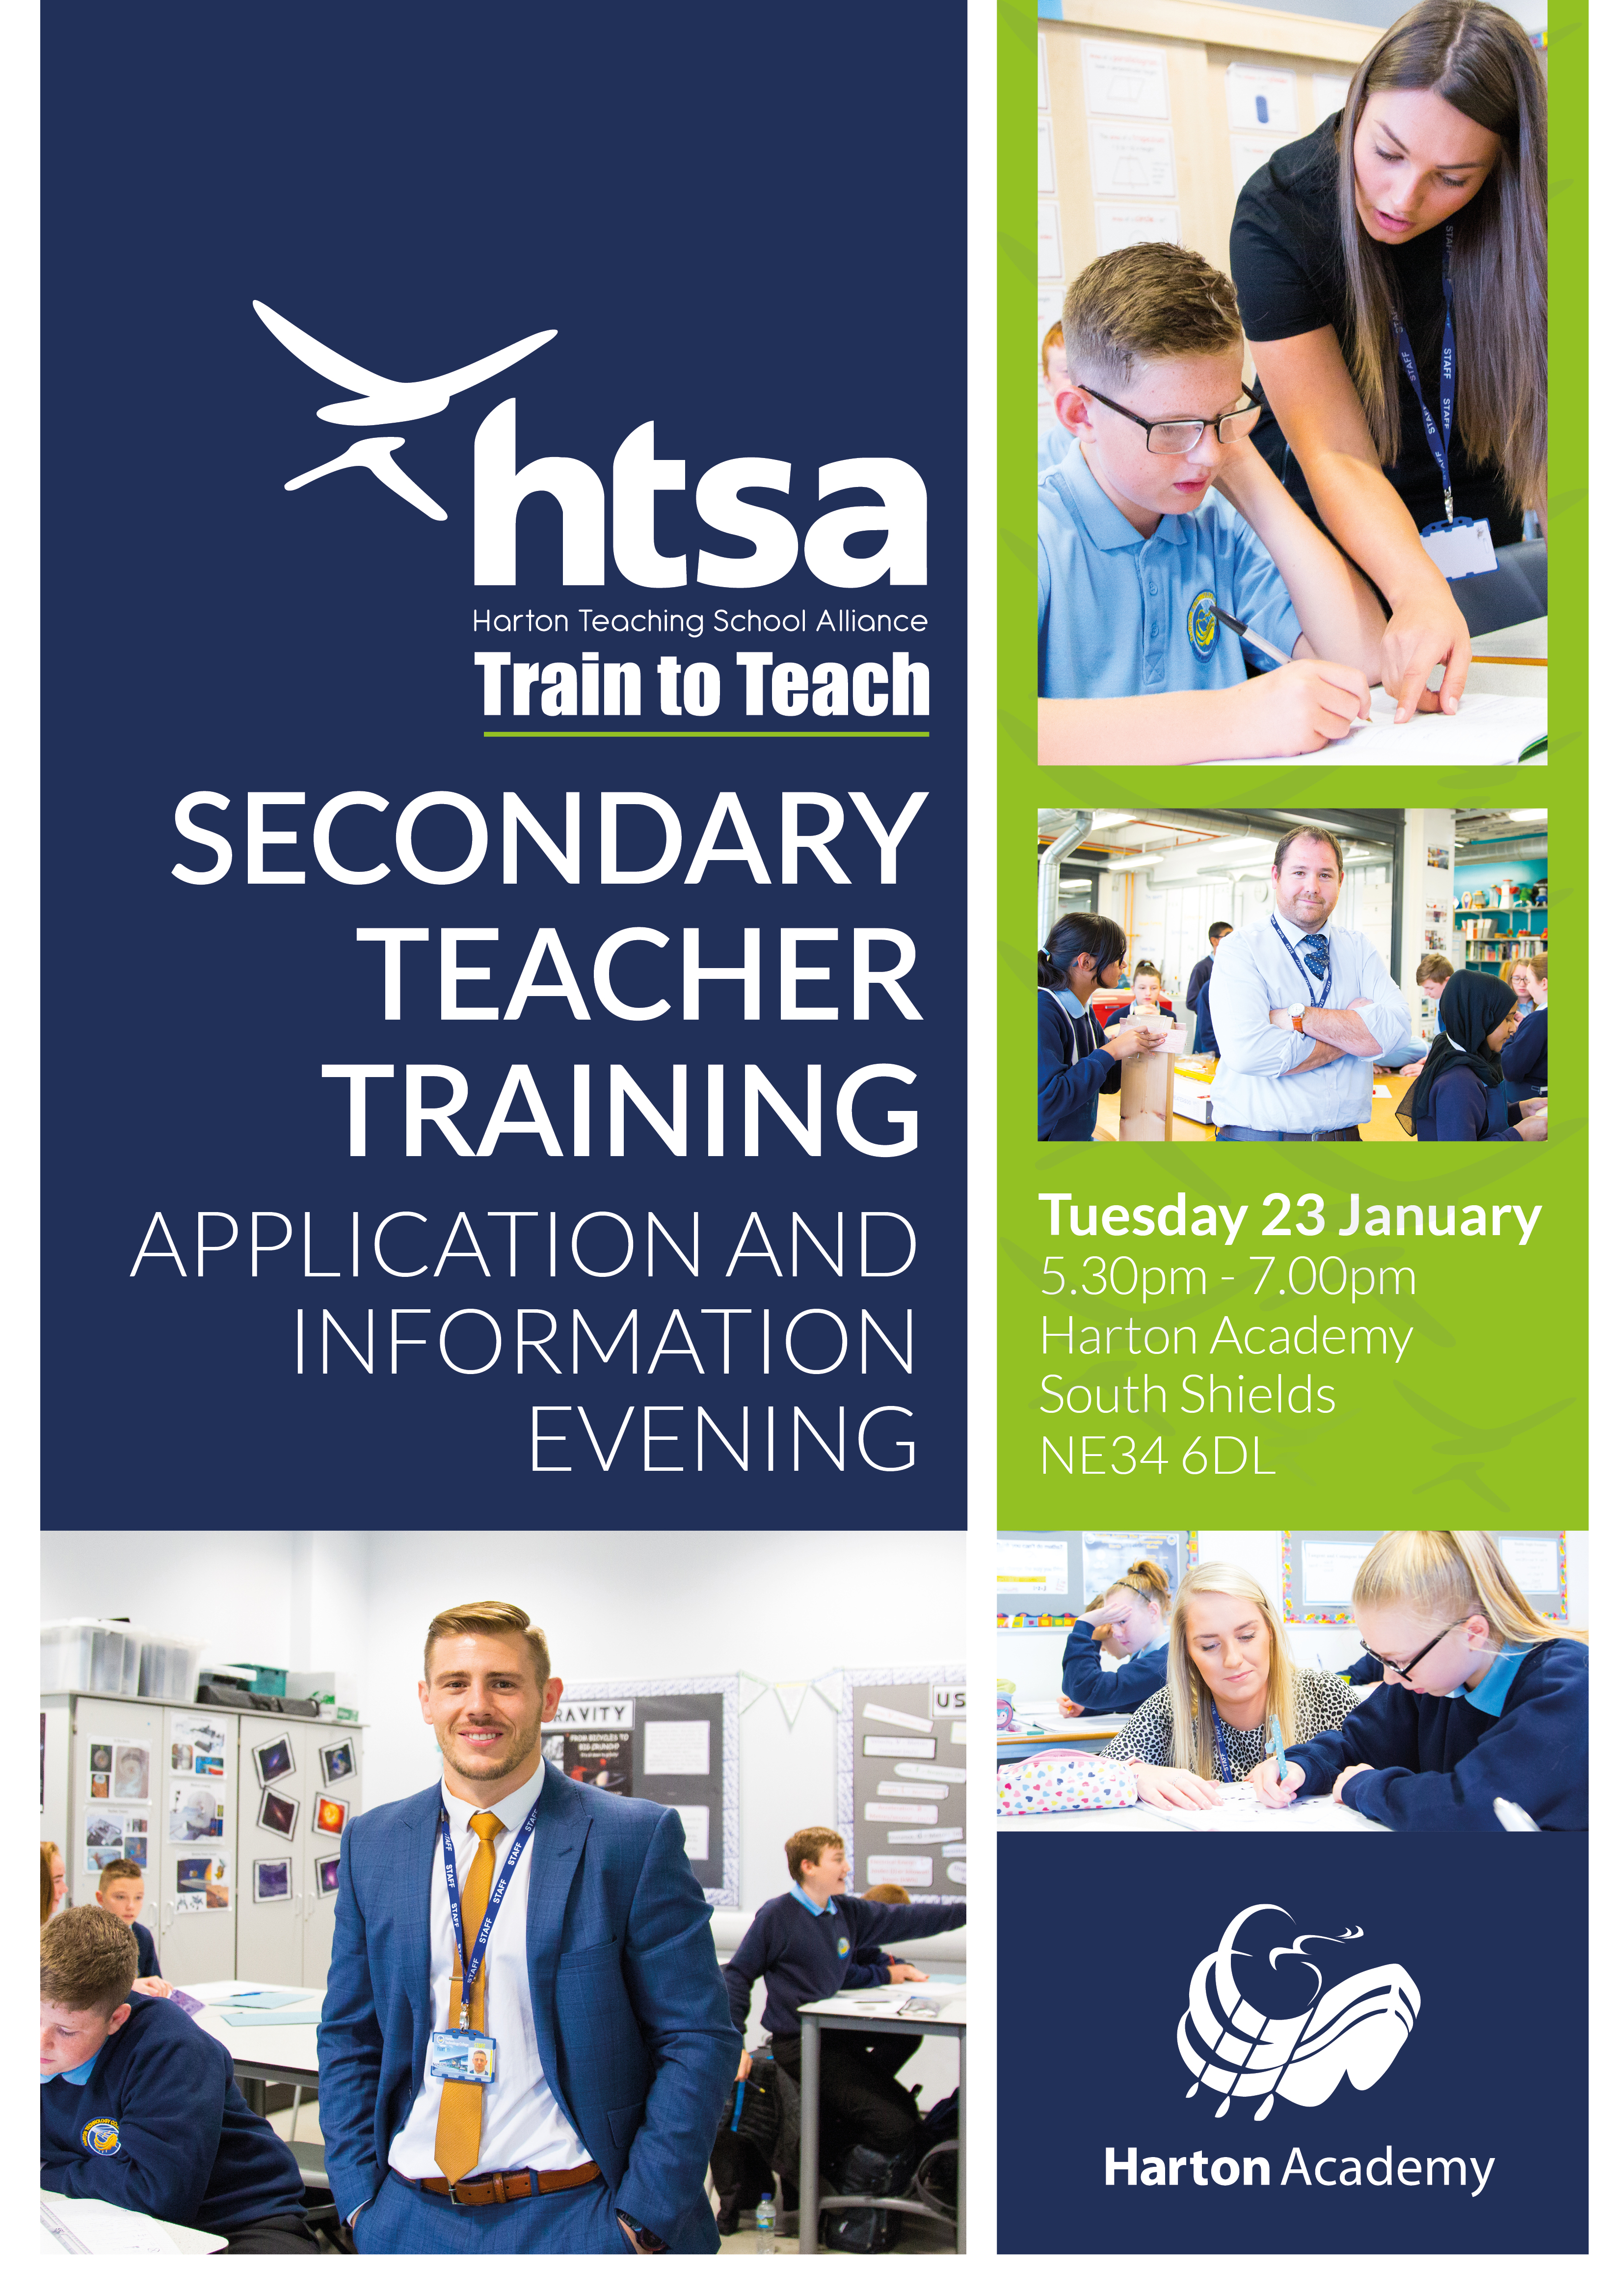 Secondary Teacher Training Application and information Evening